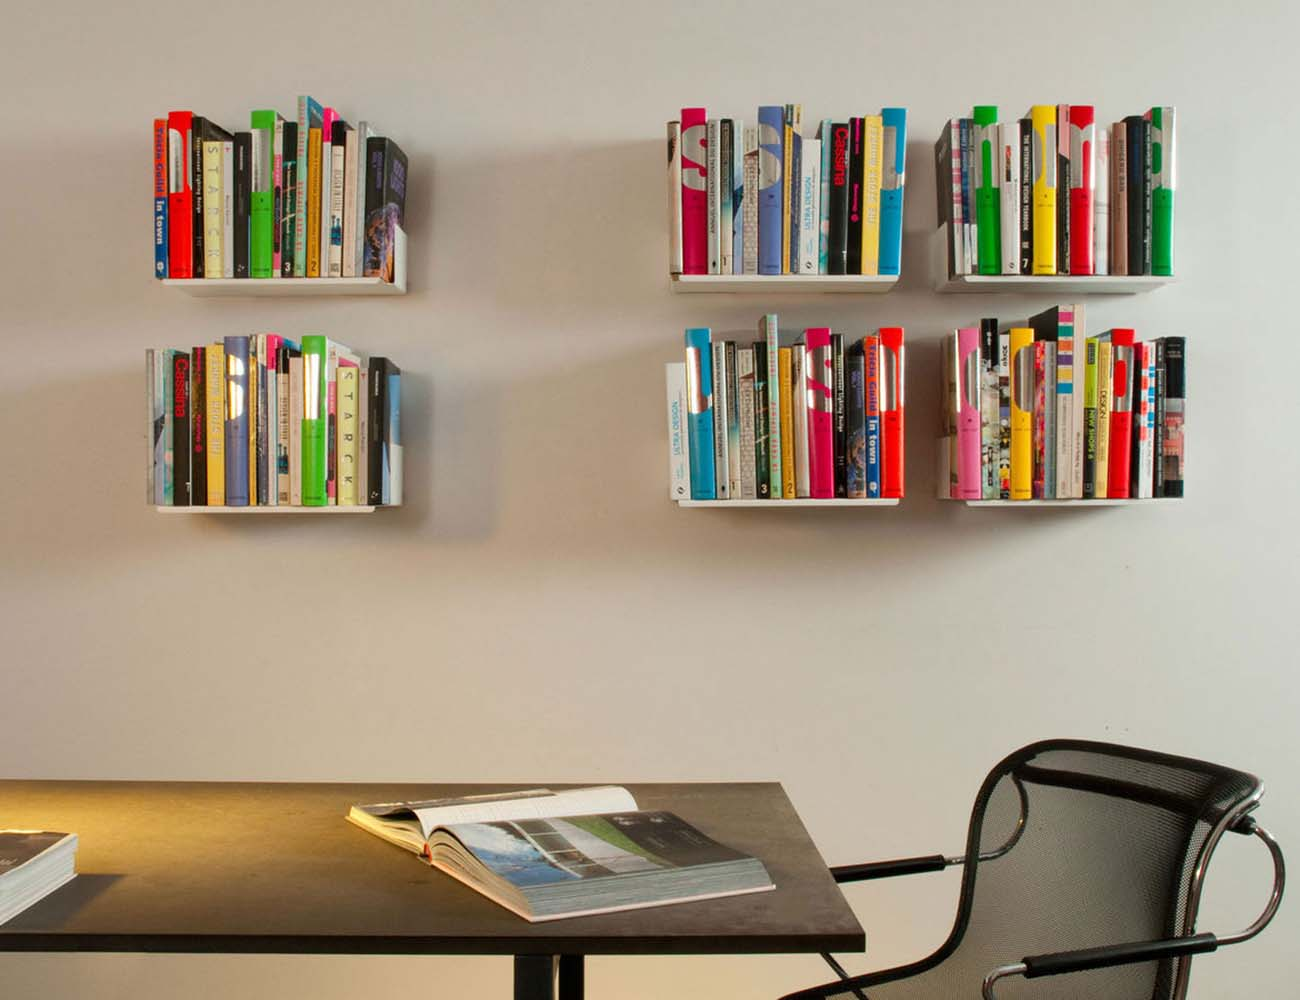 judd wall shelves by teebooks keep your books suspended in air. Black Bedroom Furniture Sets. Home Design Ideas